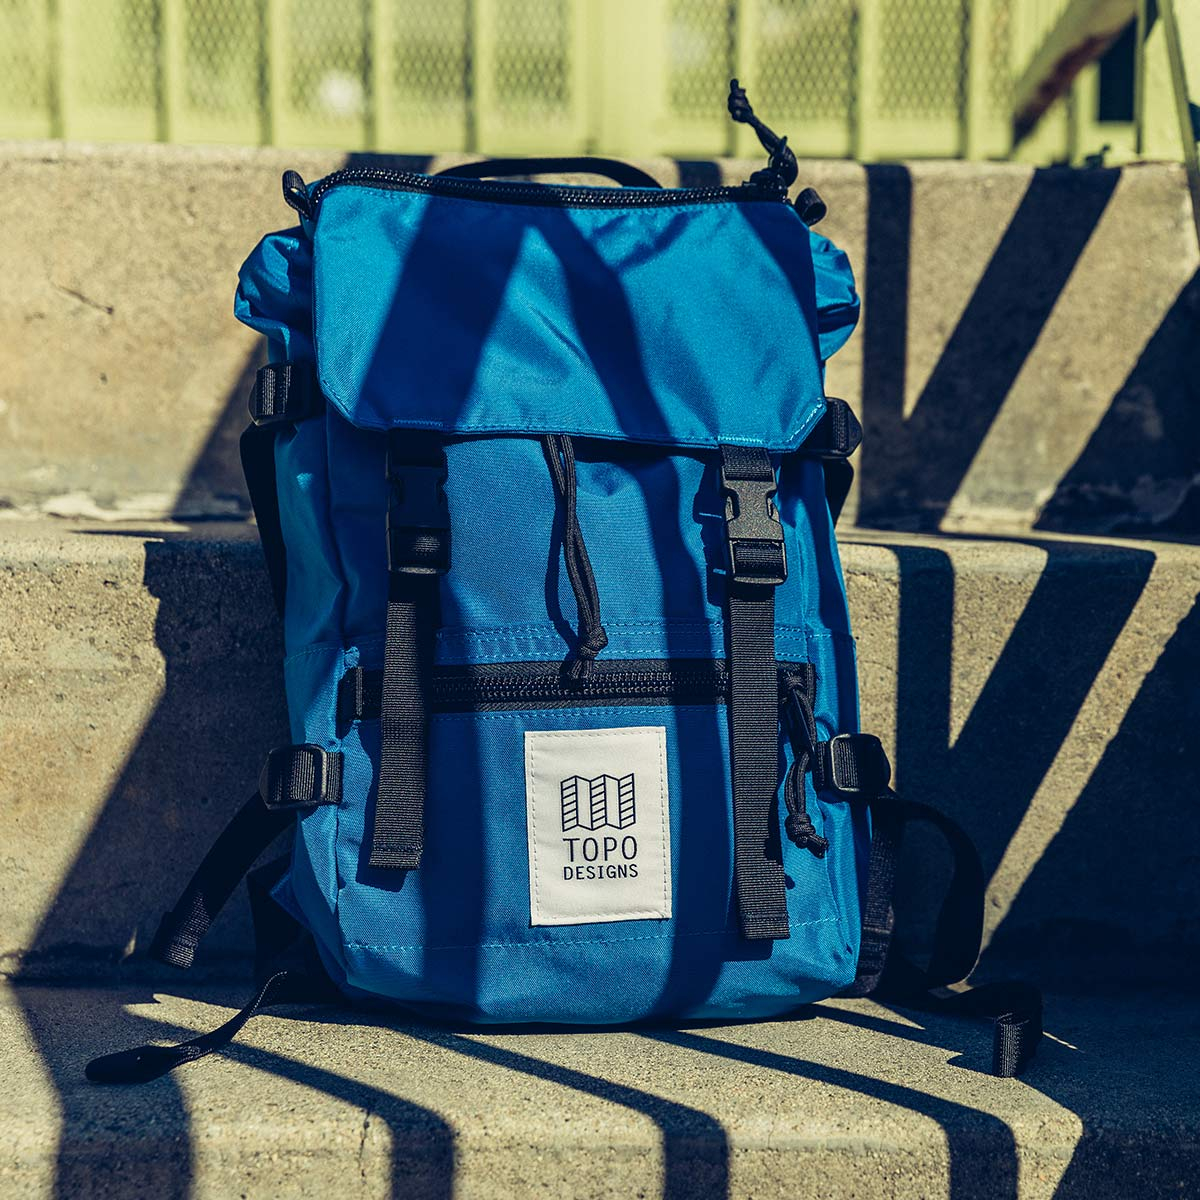 Topo Designs Rover Pack - Mini Blue-Blue, statement-making bag that's the perfect size for errands around town or on the trail